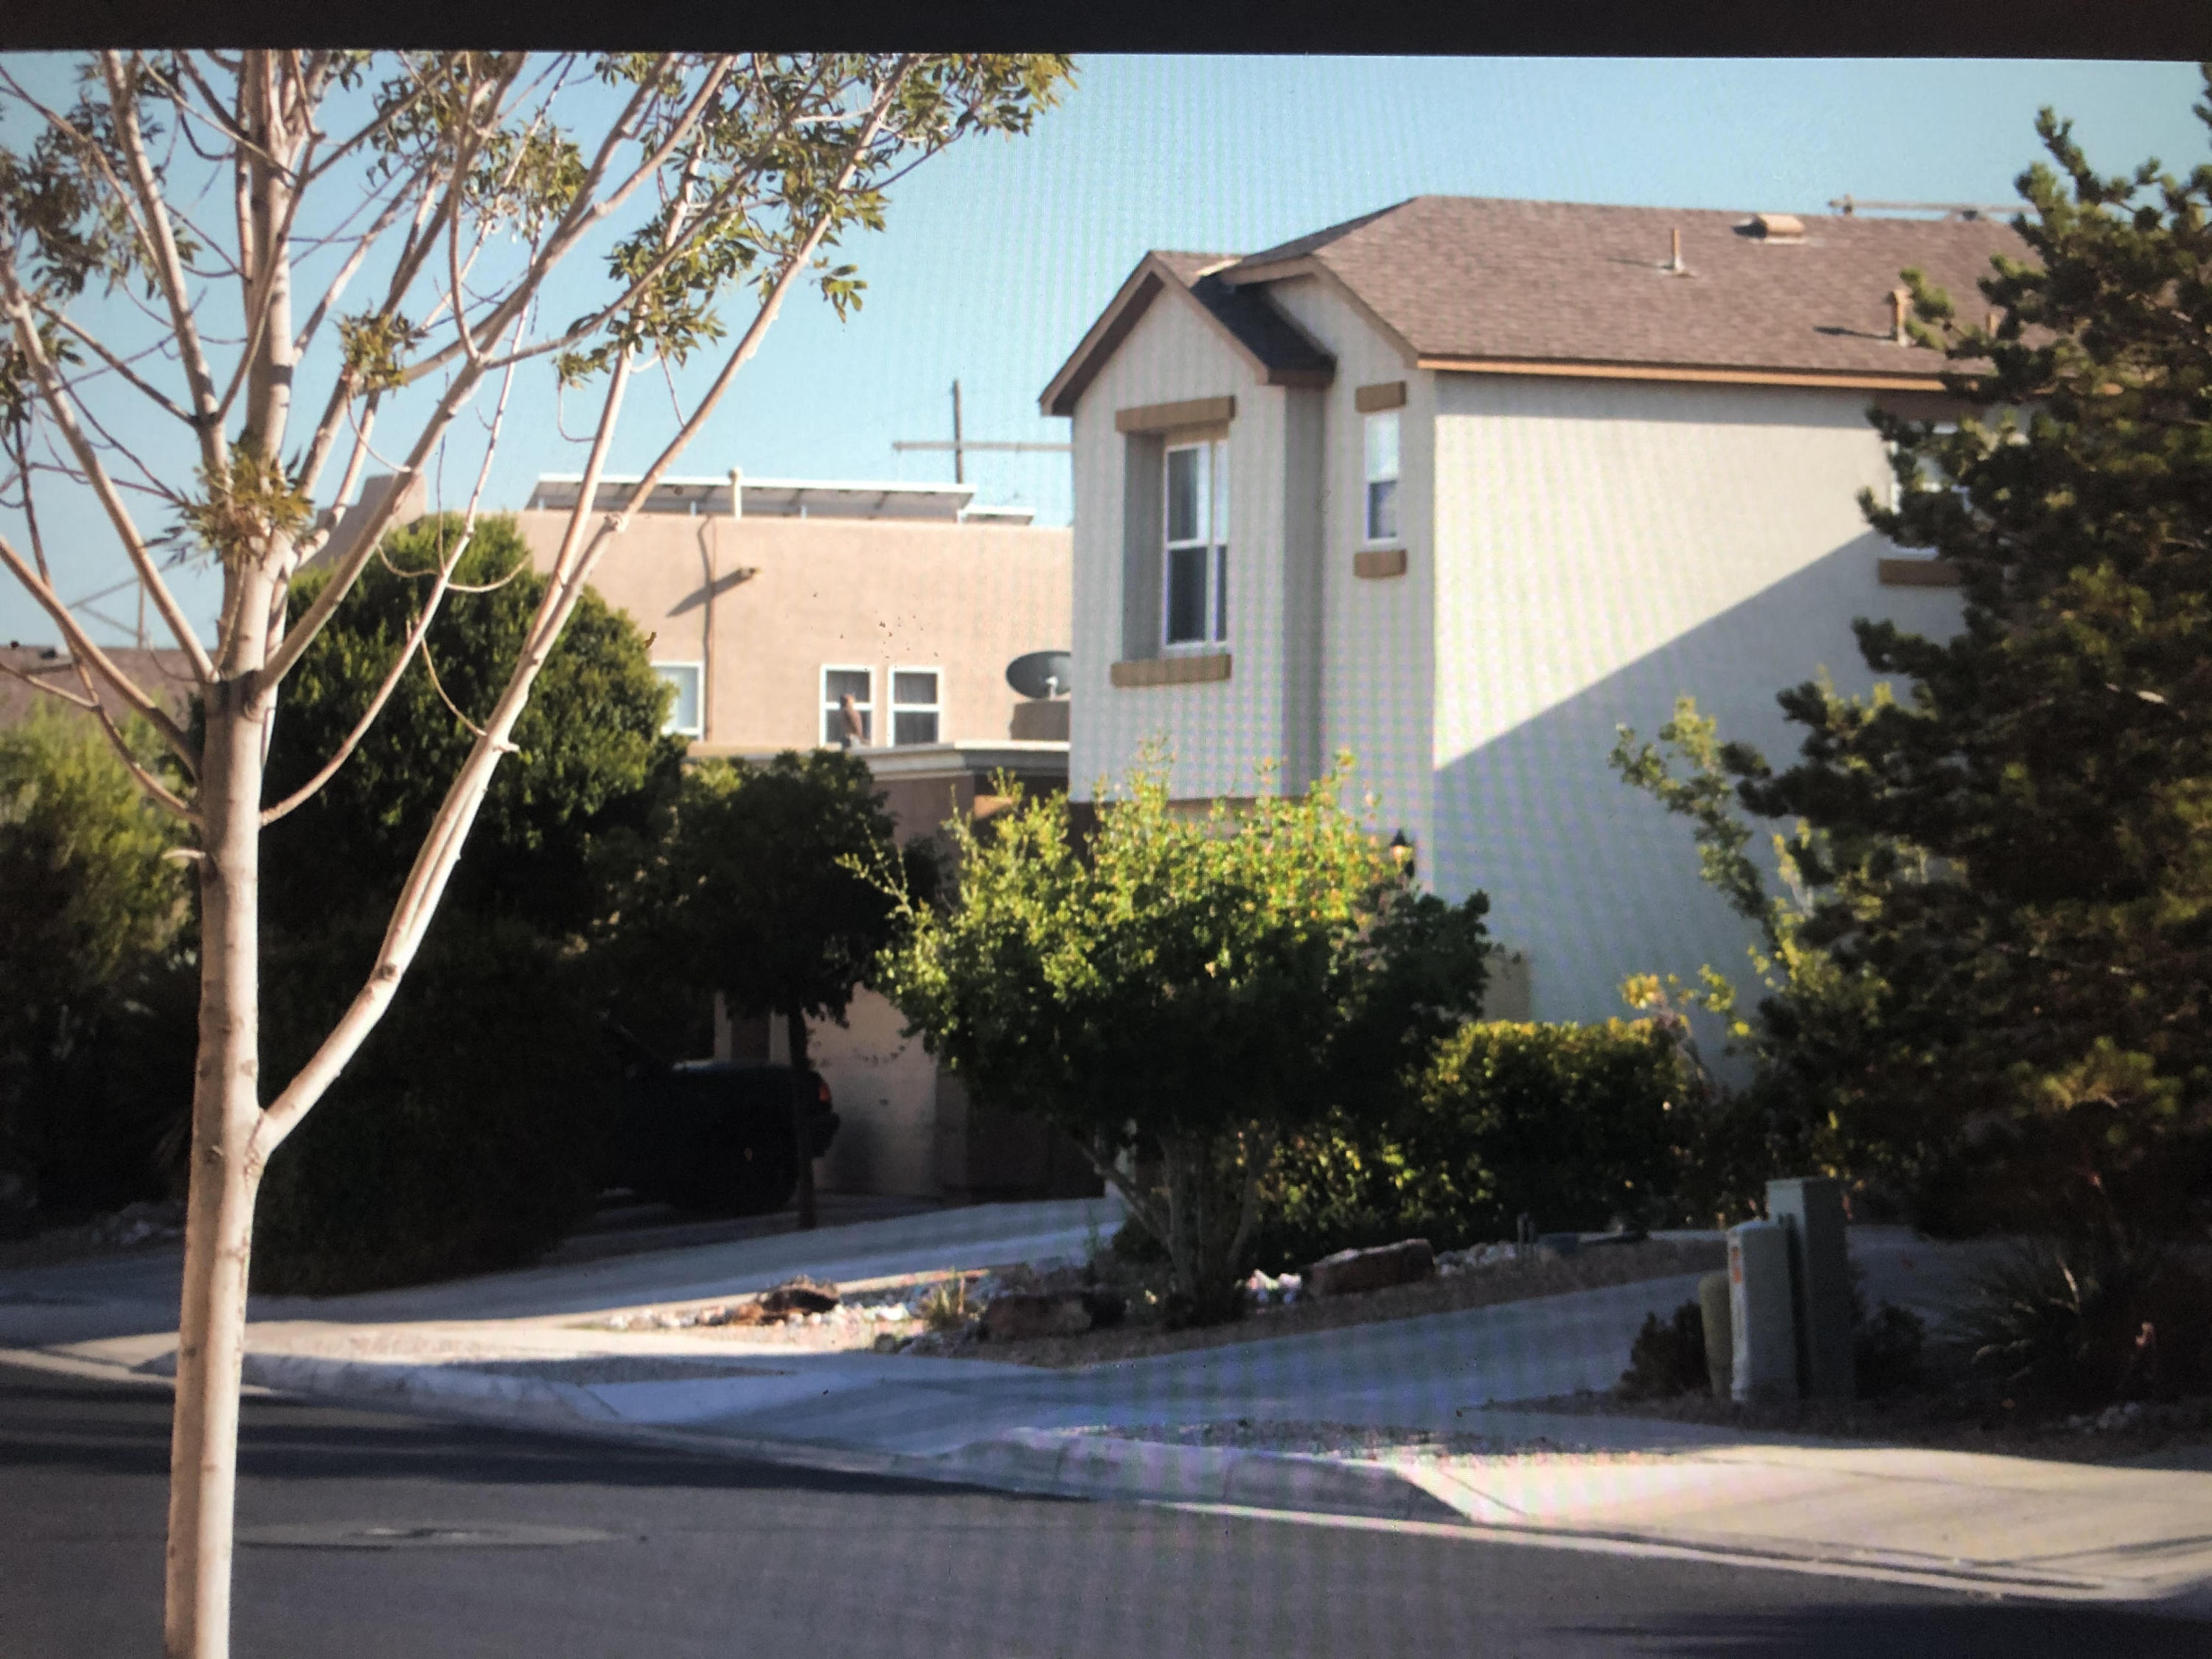 Priced right! May not last long in the market.  A charming home with two living areas and an office. Spacious and functional floor plan with a large open kitchen. Low maintenance backyard. Located in a gated subdivision just a block from the community park, playground and swimming pool.  Add this one to your must see list! Property has 2 HOAs, $63/month + $32.50/quarter. Please see LO/SO remarks for showing details. SALE CONTINGENT on seller buying another house.  Offers reviewed on 08/17/20 and replied to on 8/19/20.